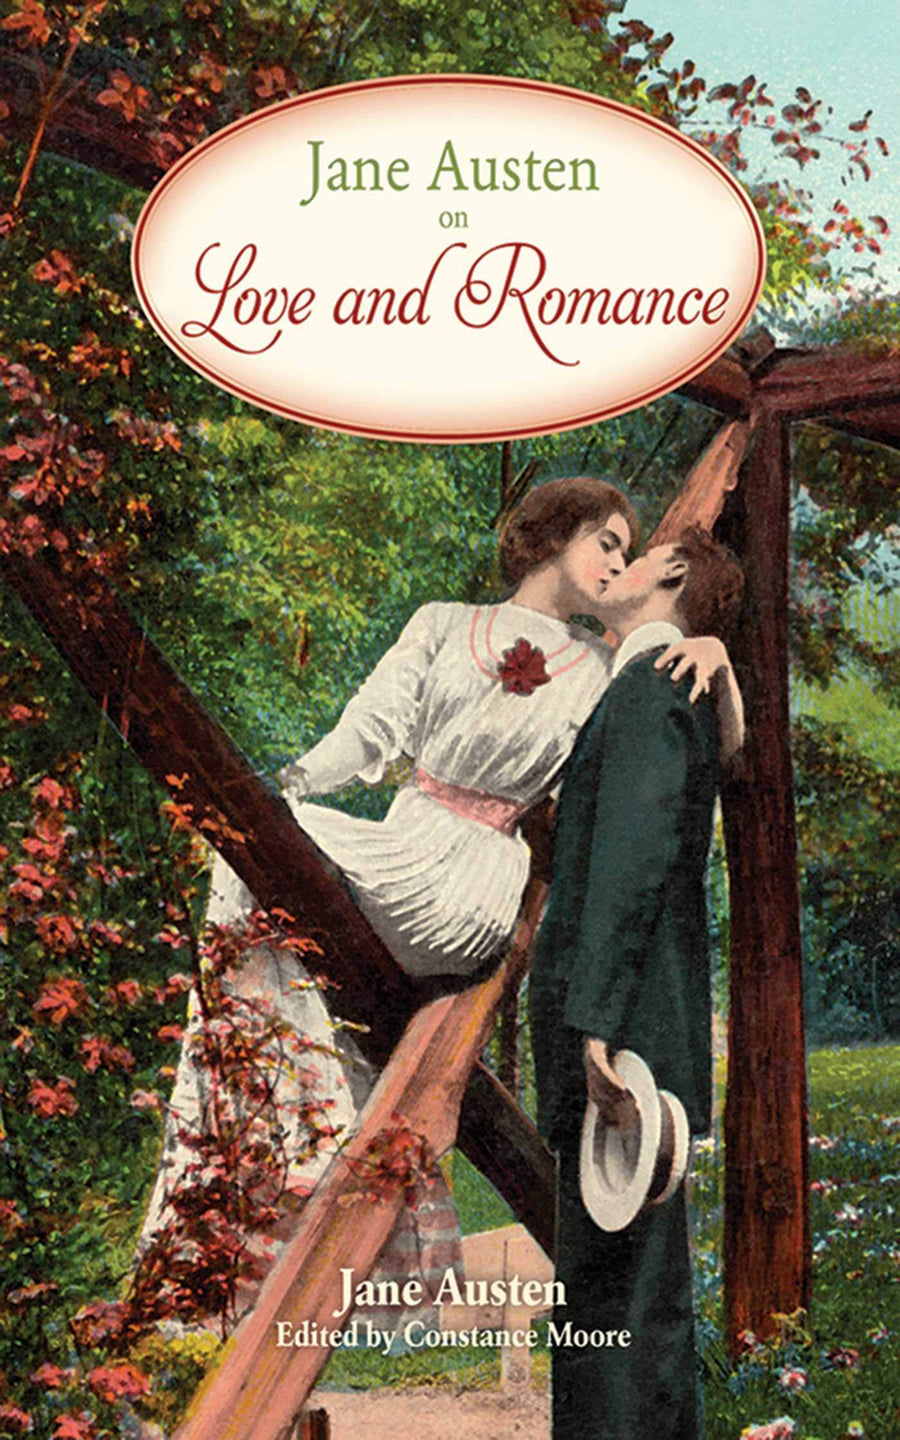 Jane Austen on Love and Romance by Jane Austen and Constance Moore